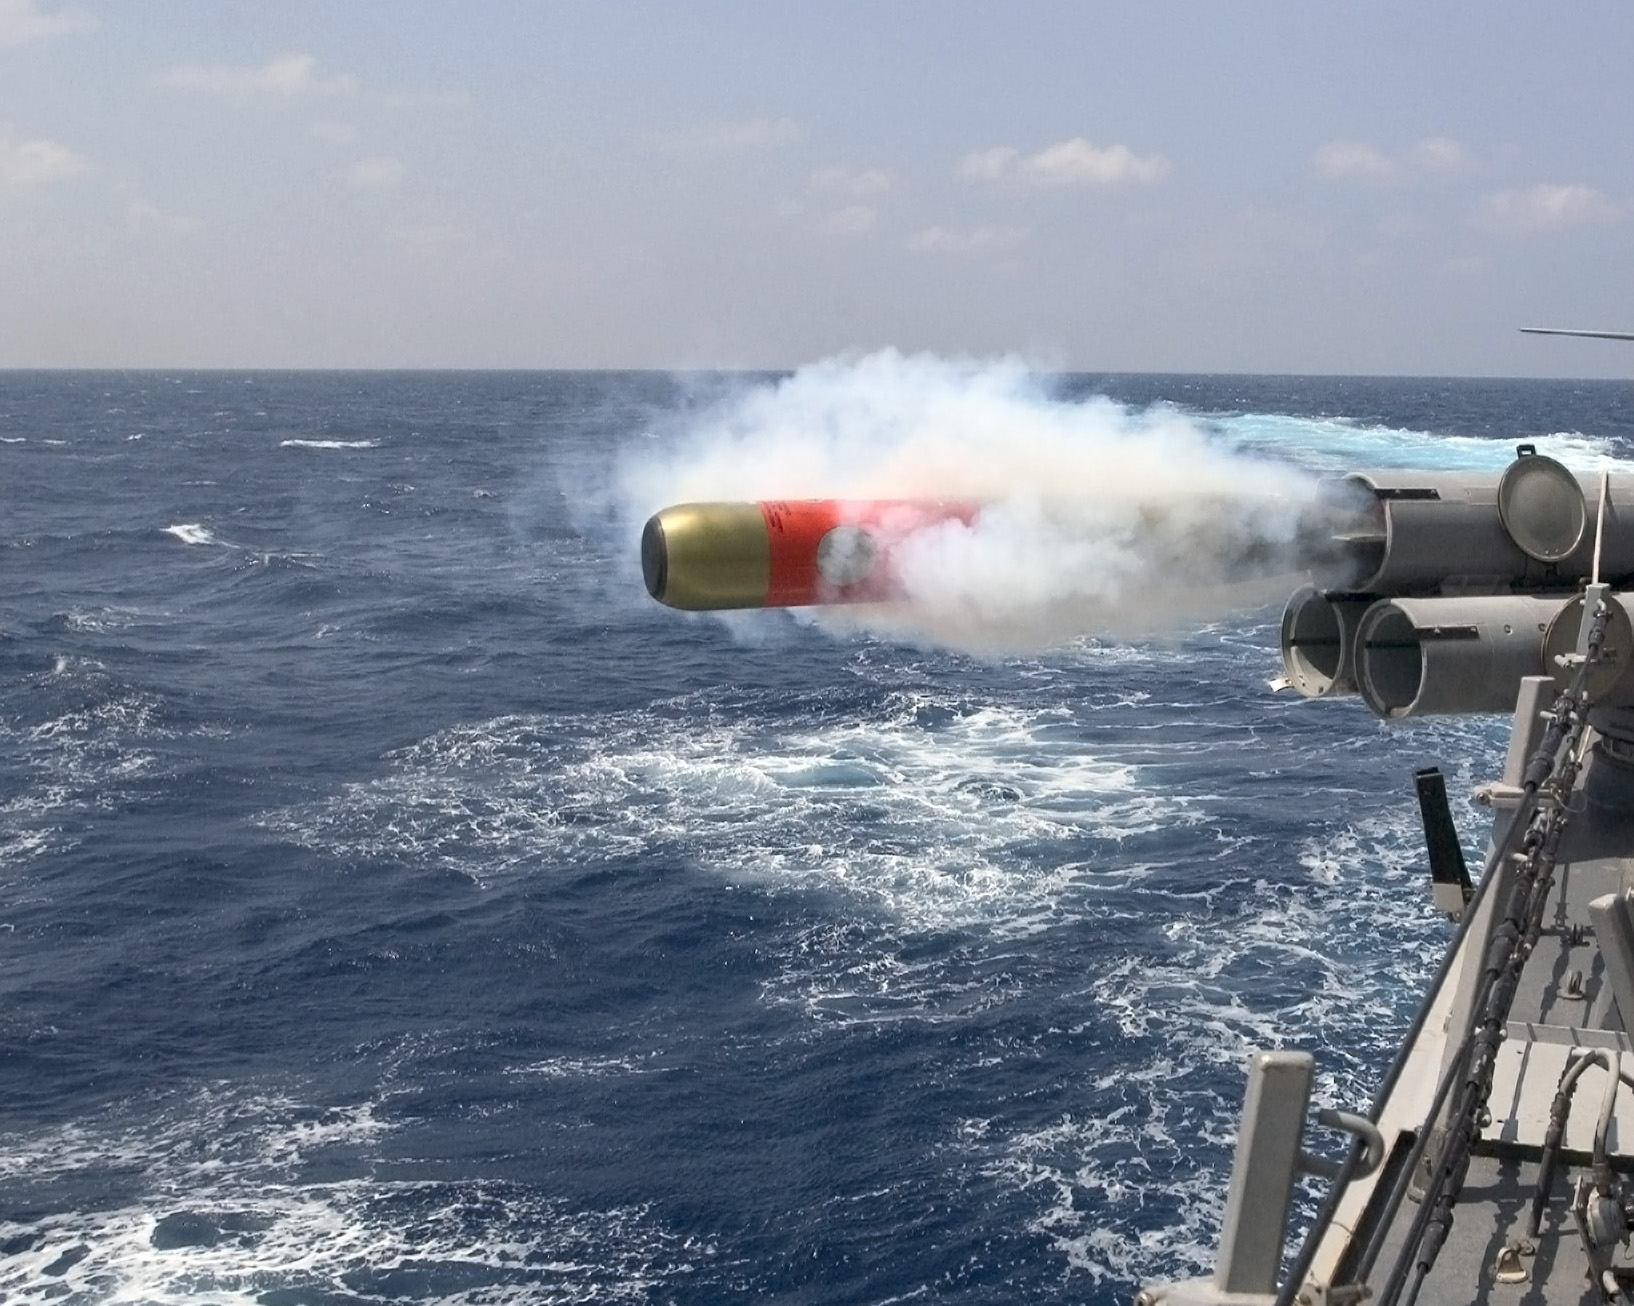 A MK-46 exercise torpedo is launched from the deck of Arleigh Burke class guided-missile destroyer USS Mustin (DDG-89) in 2007. US Navy Photo